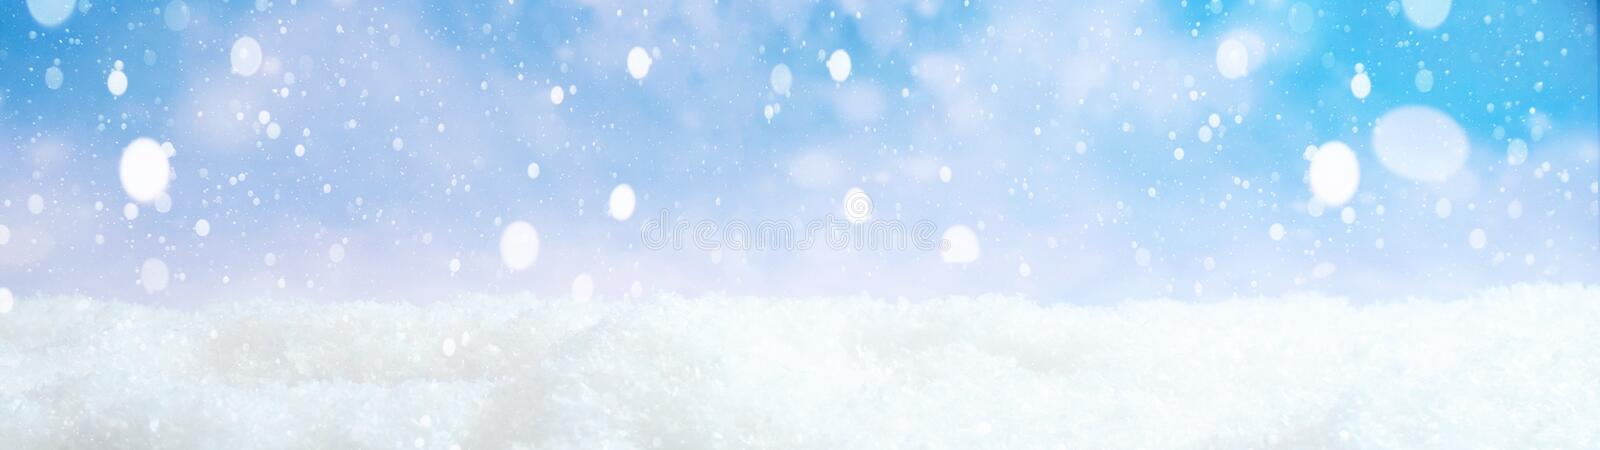 Winter snowy background panorama long- blue sky with snowflakes stock illustration